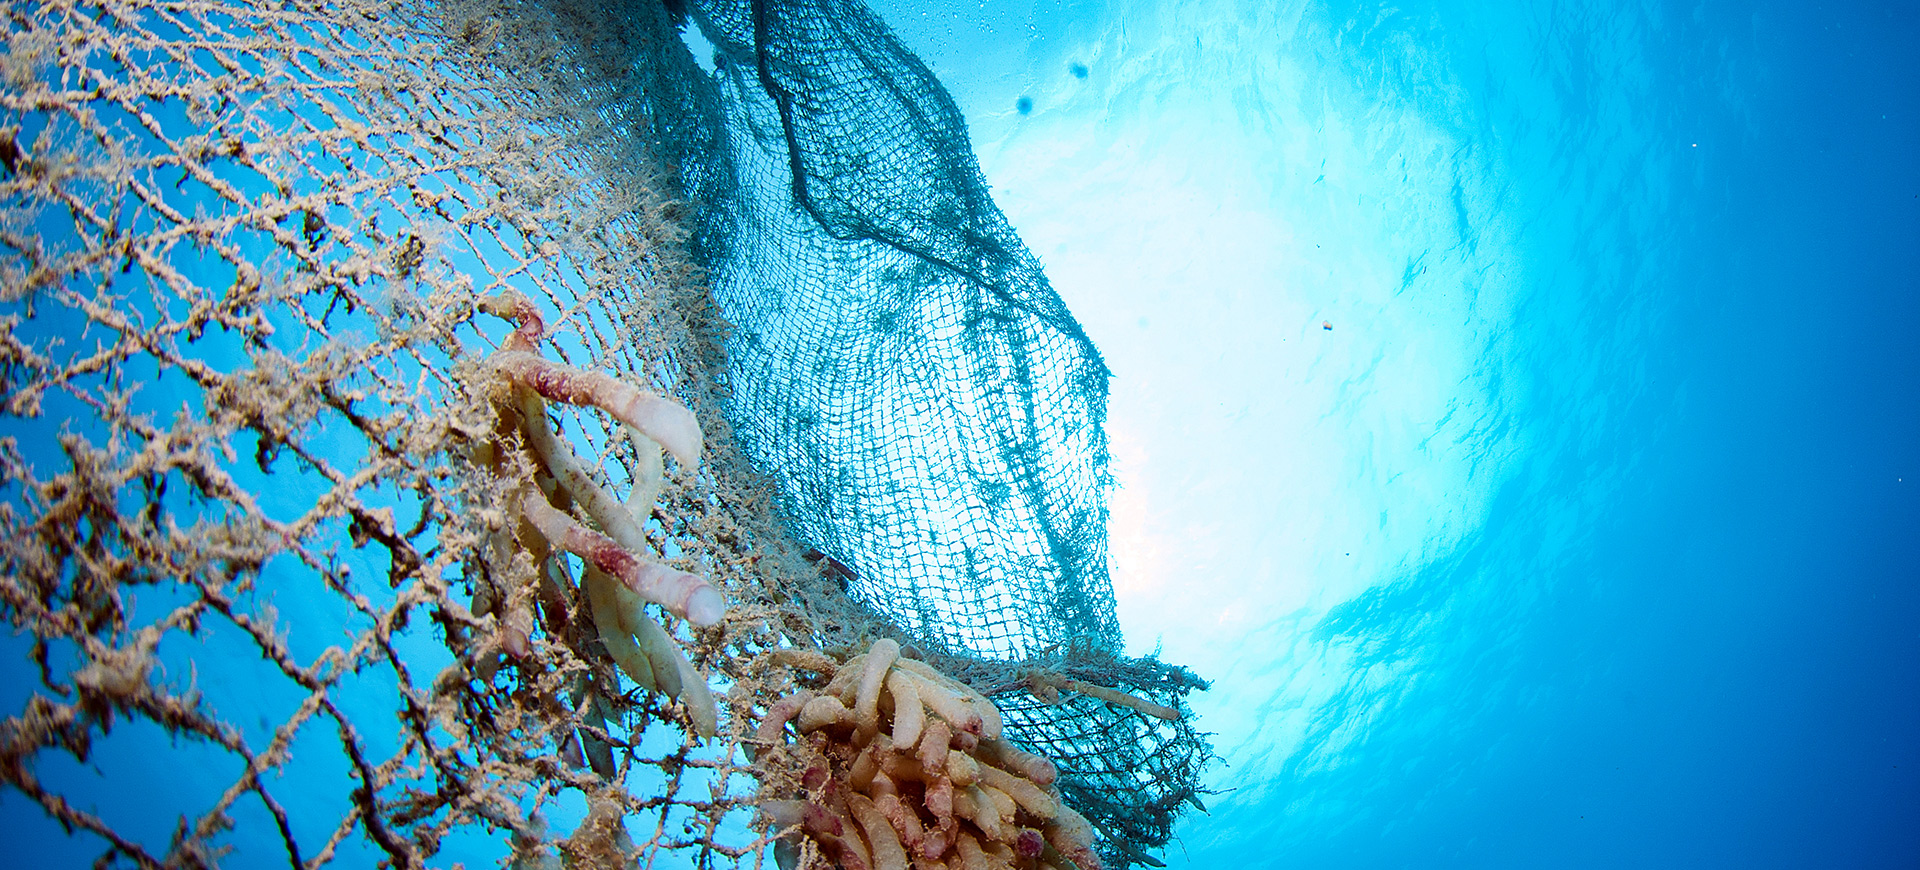 Fishing net in ocean